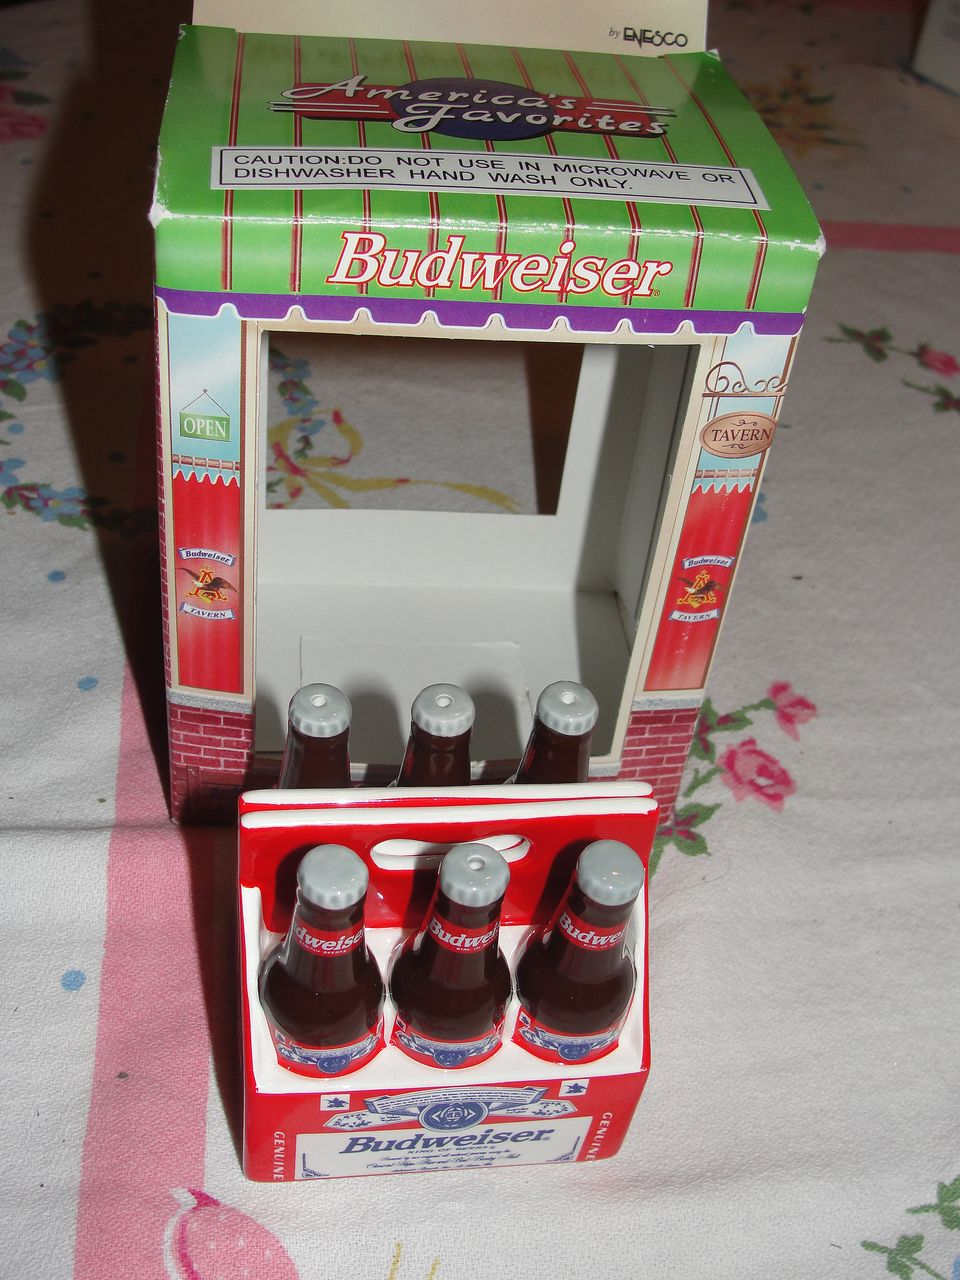 Enesco Budweiser 6-pack Bottles Salt and Pepper Shakers - b24